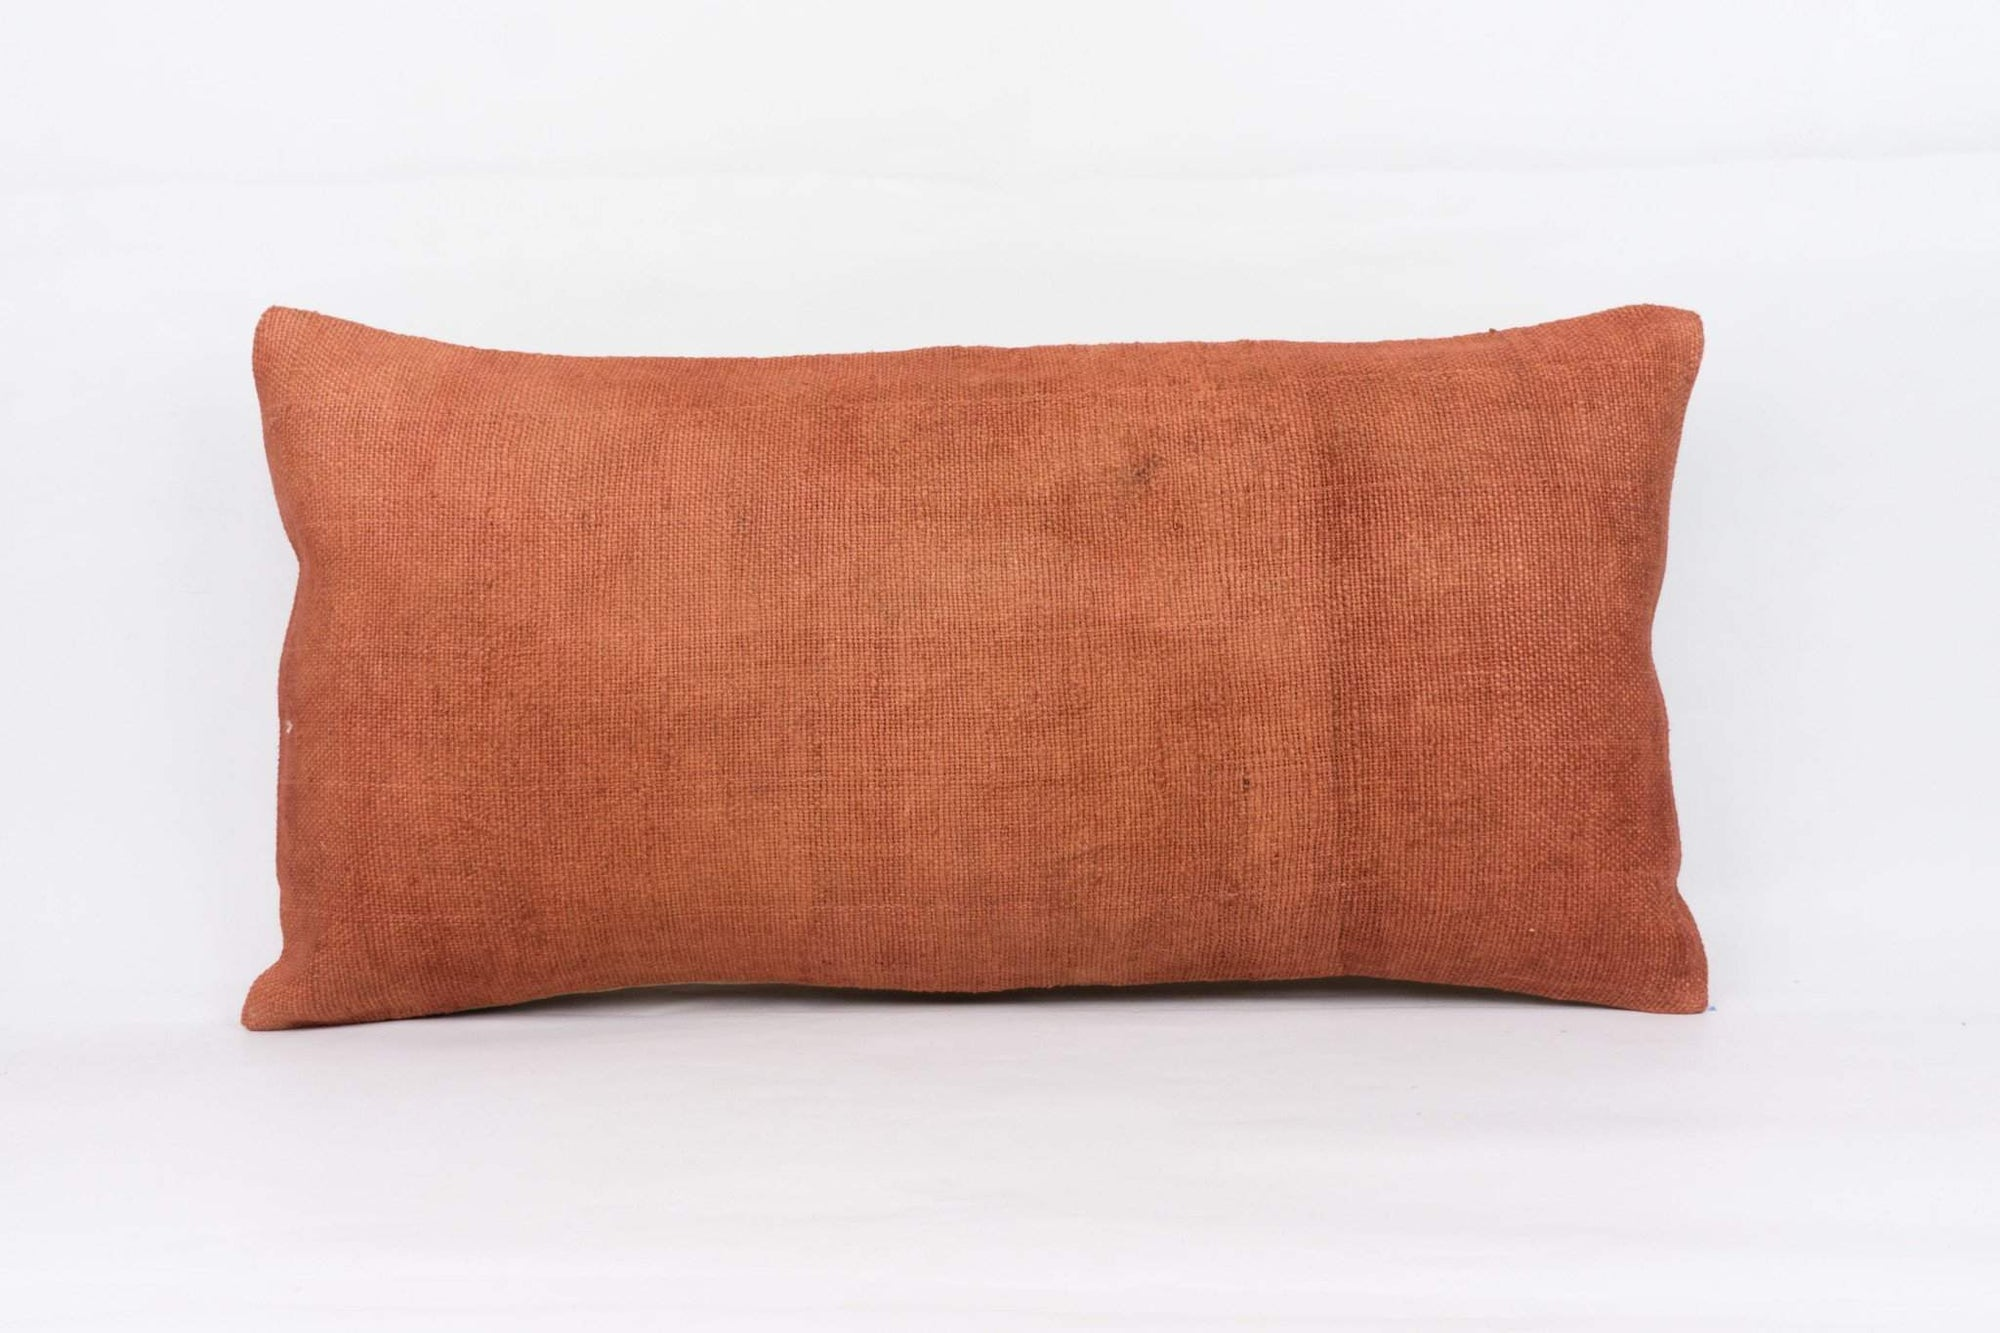 Plain Brown Kilim Pillow Cover 12x24 4195